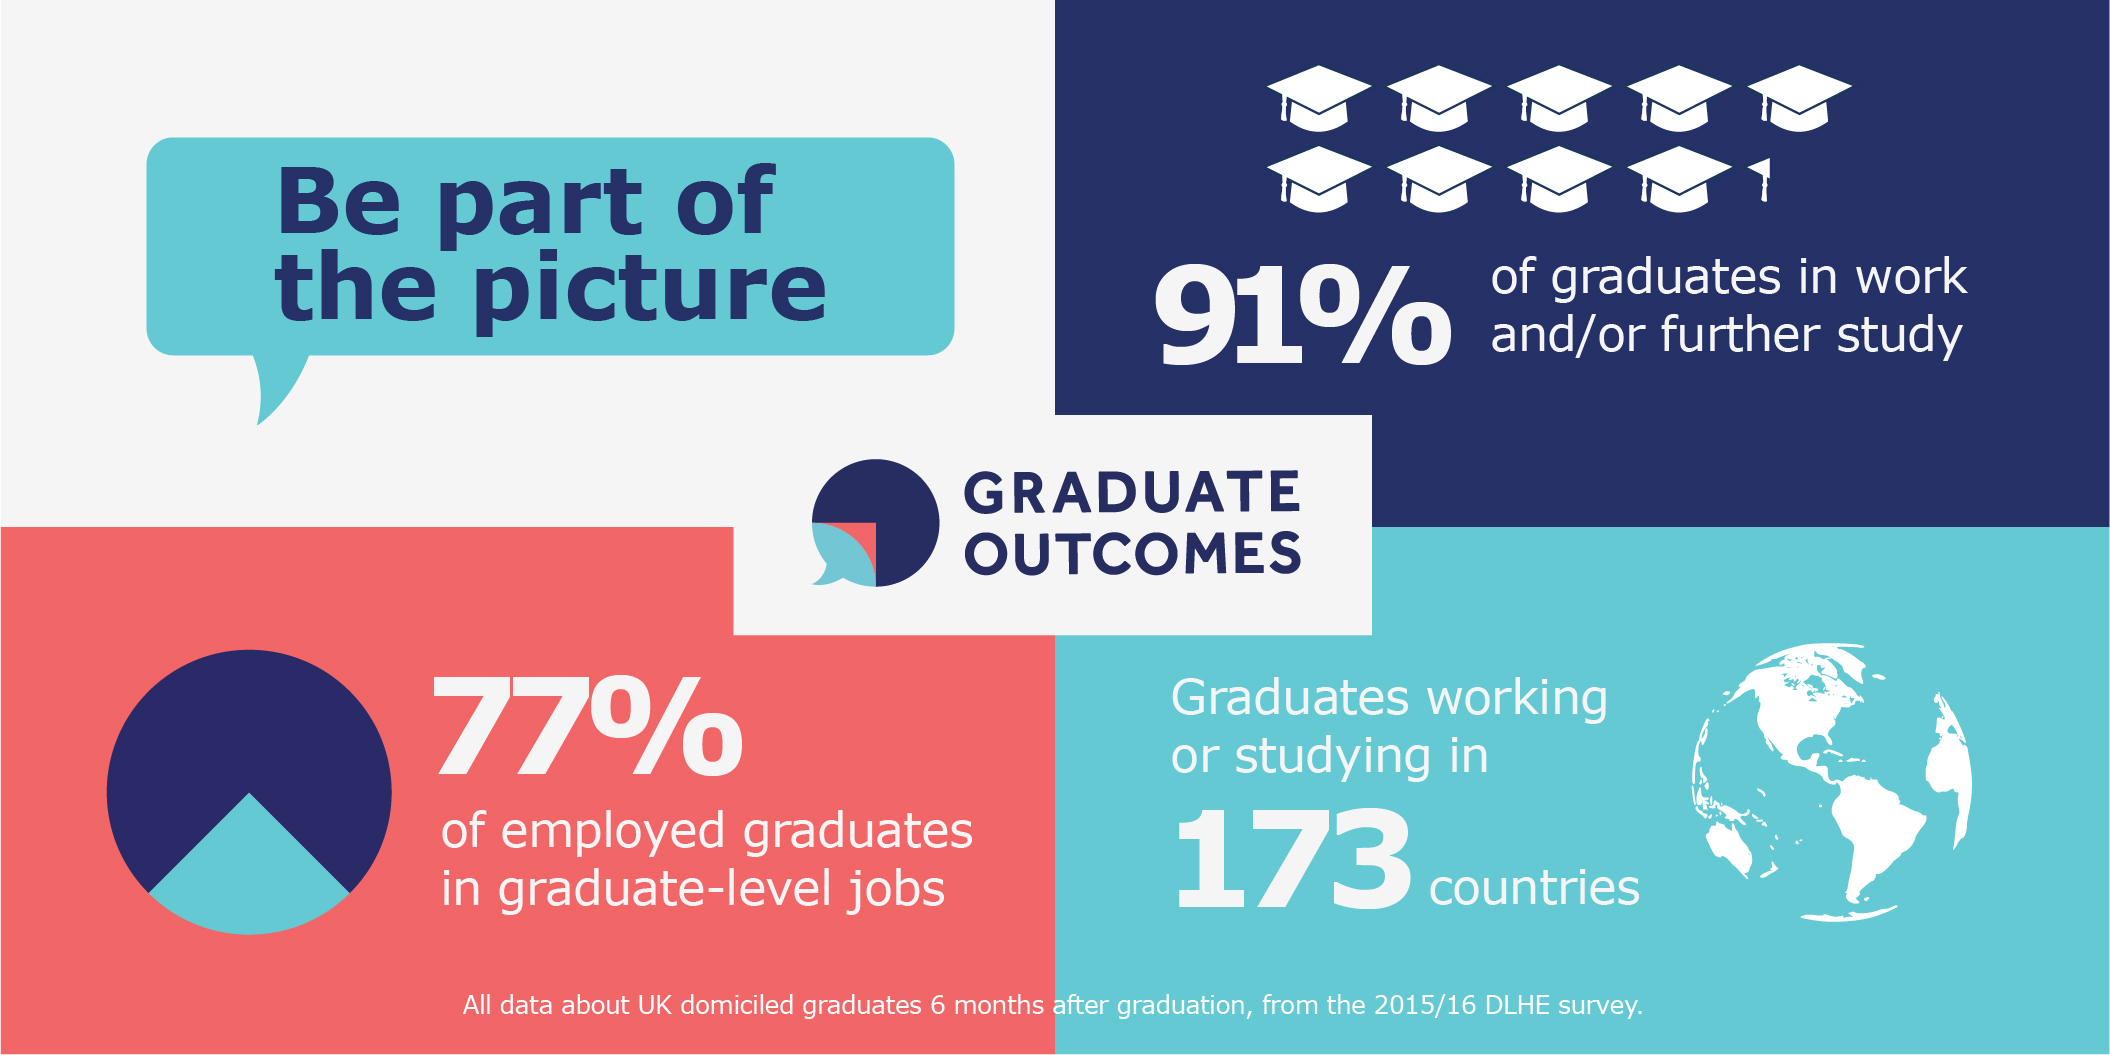 A promotional image for Graduate Outcomes featuring several statistics.